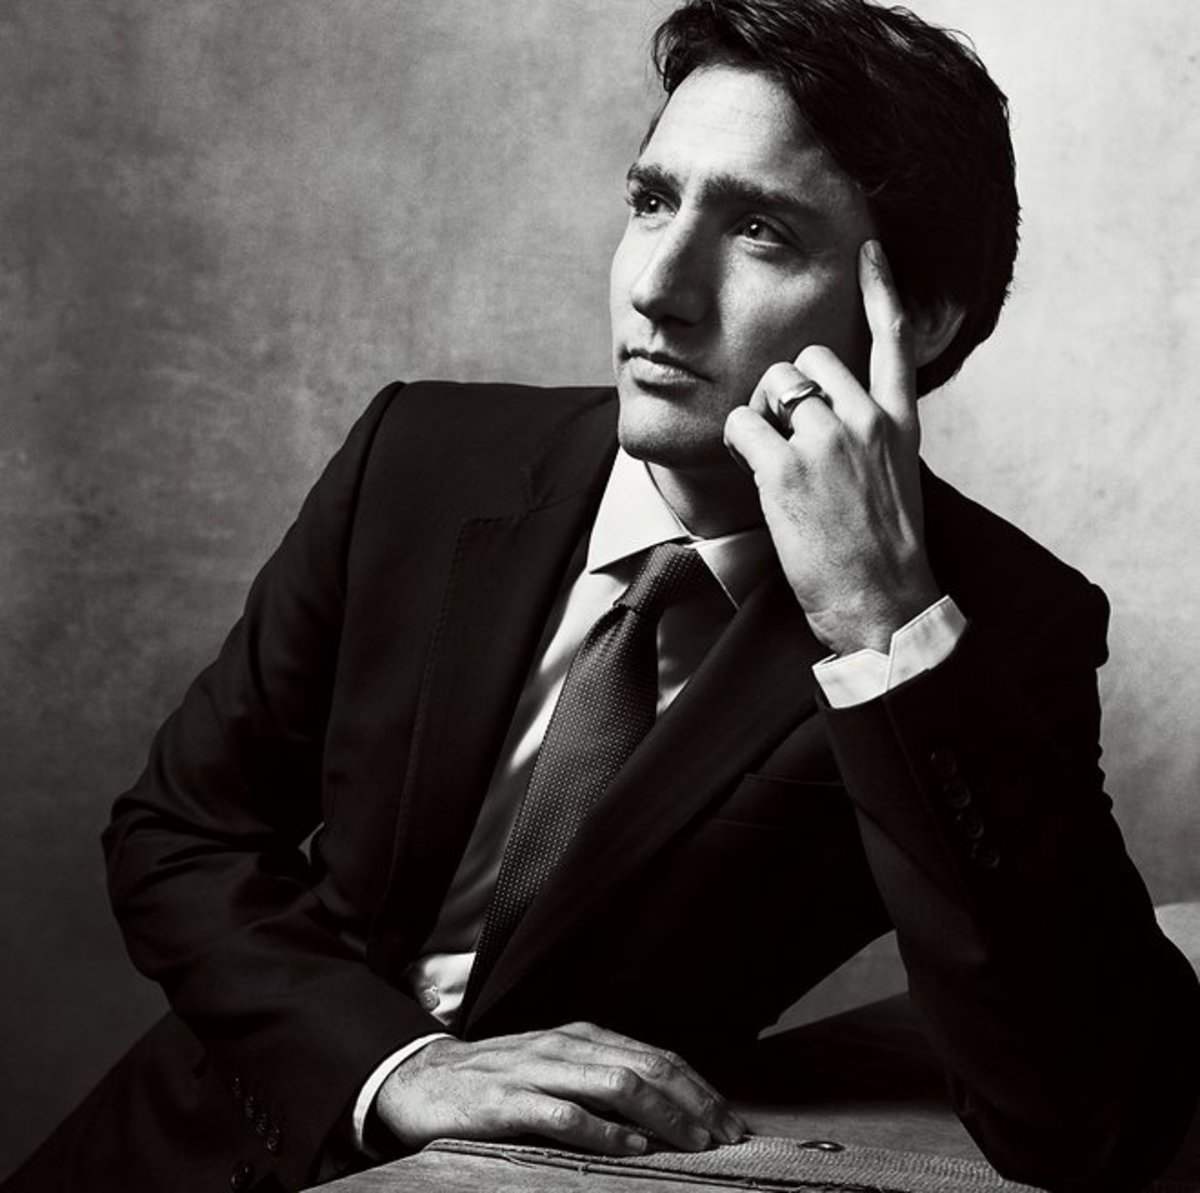 The photogenic Prime Minister in a Vogue fashion shot.